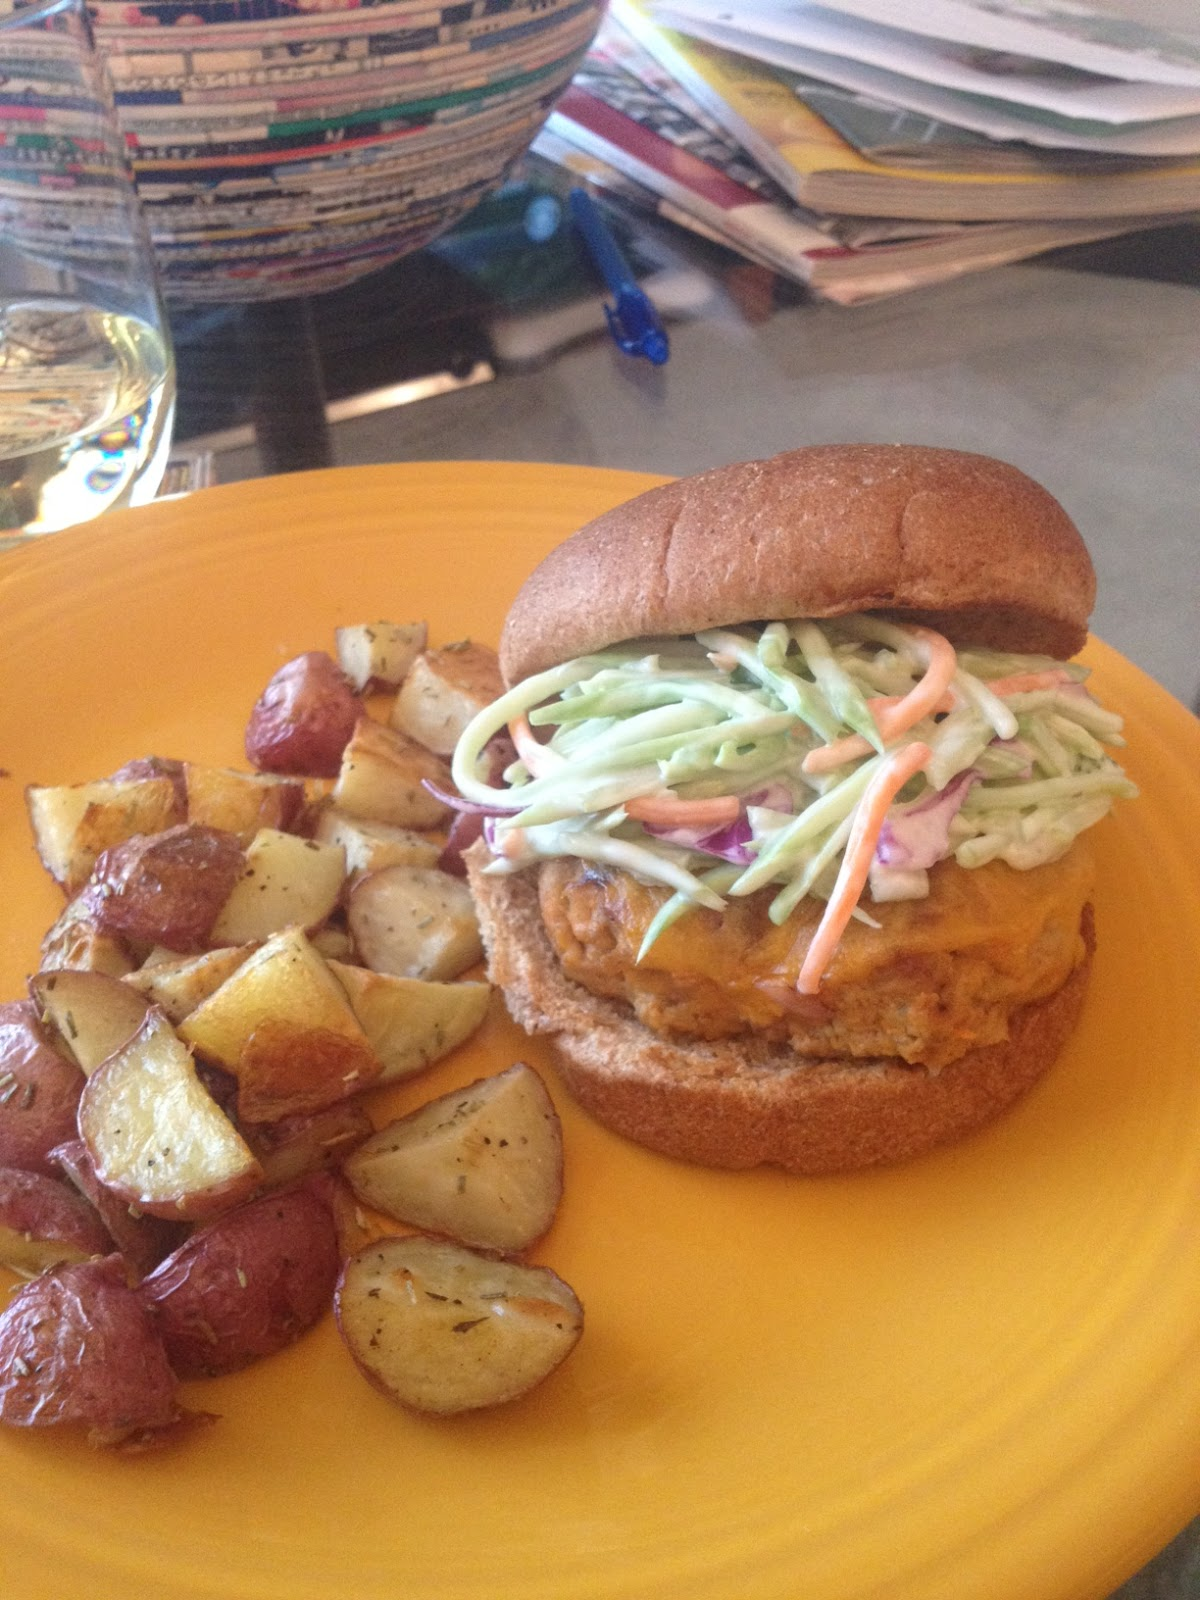 EAT ME: Buffalo Turkey Burgers with Blue Cheese Slaw